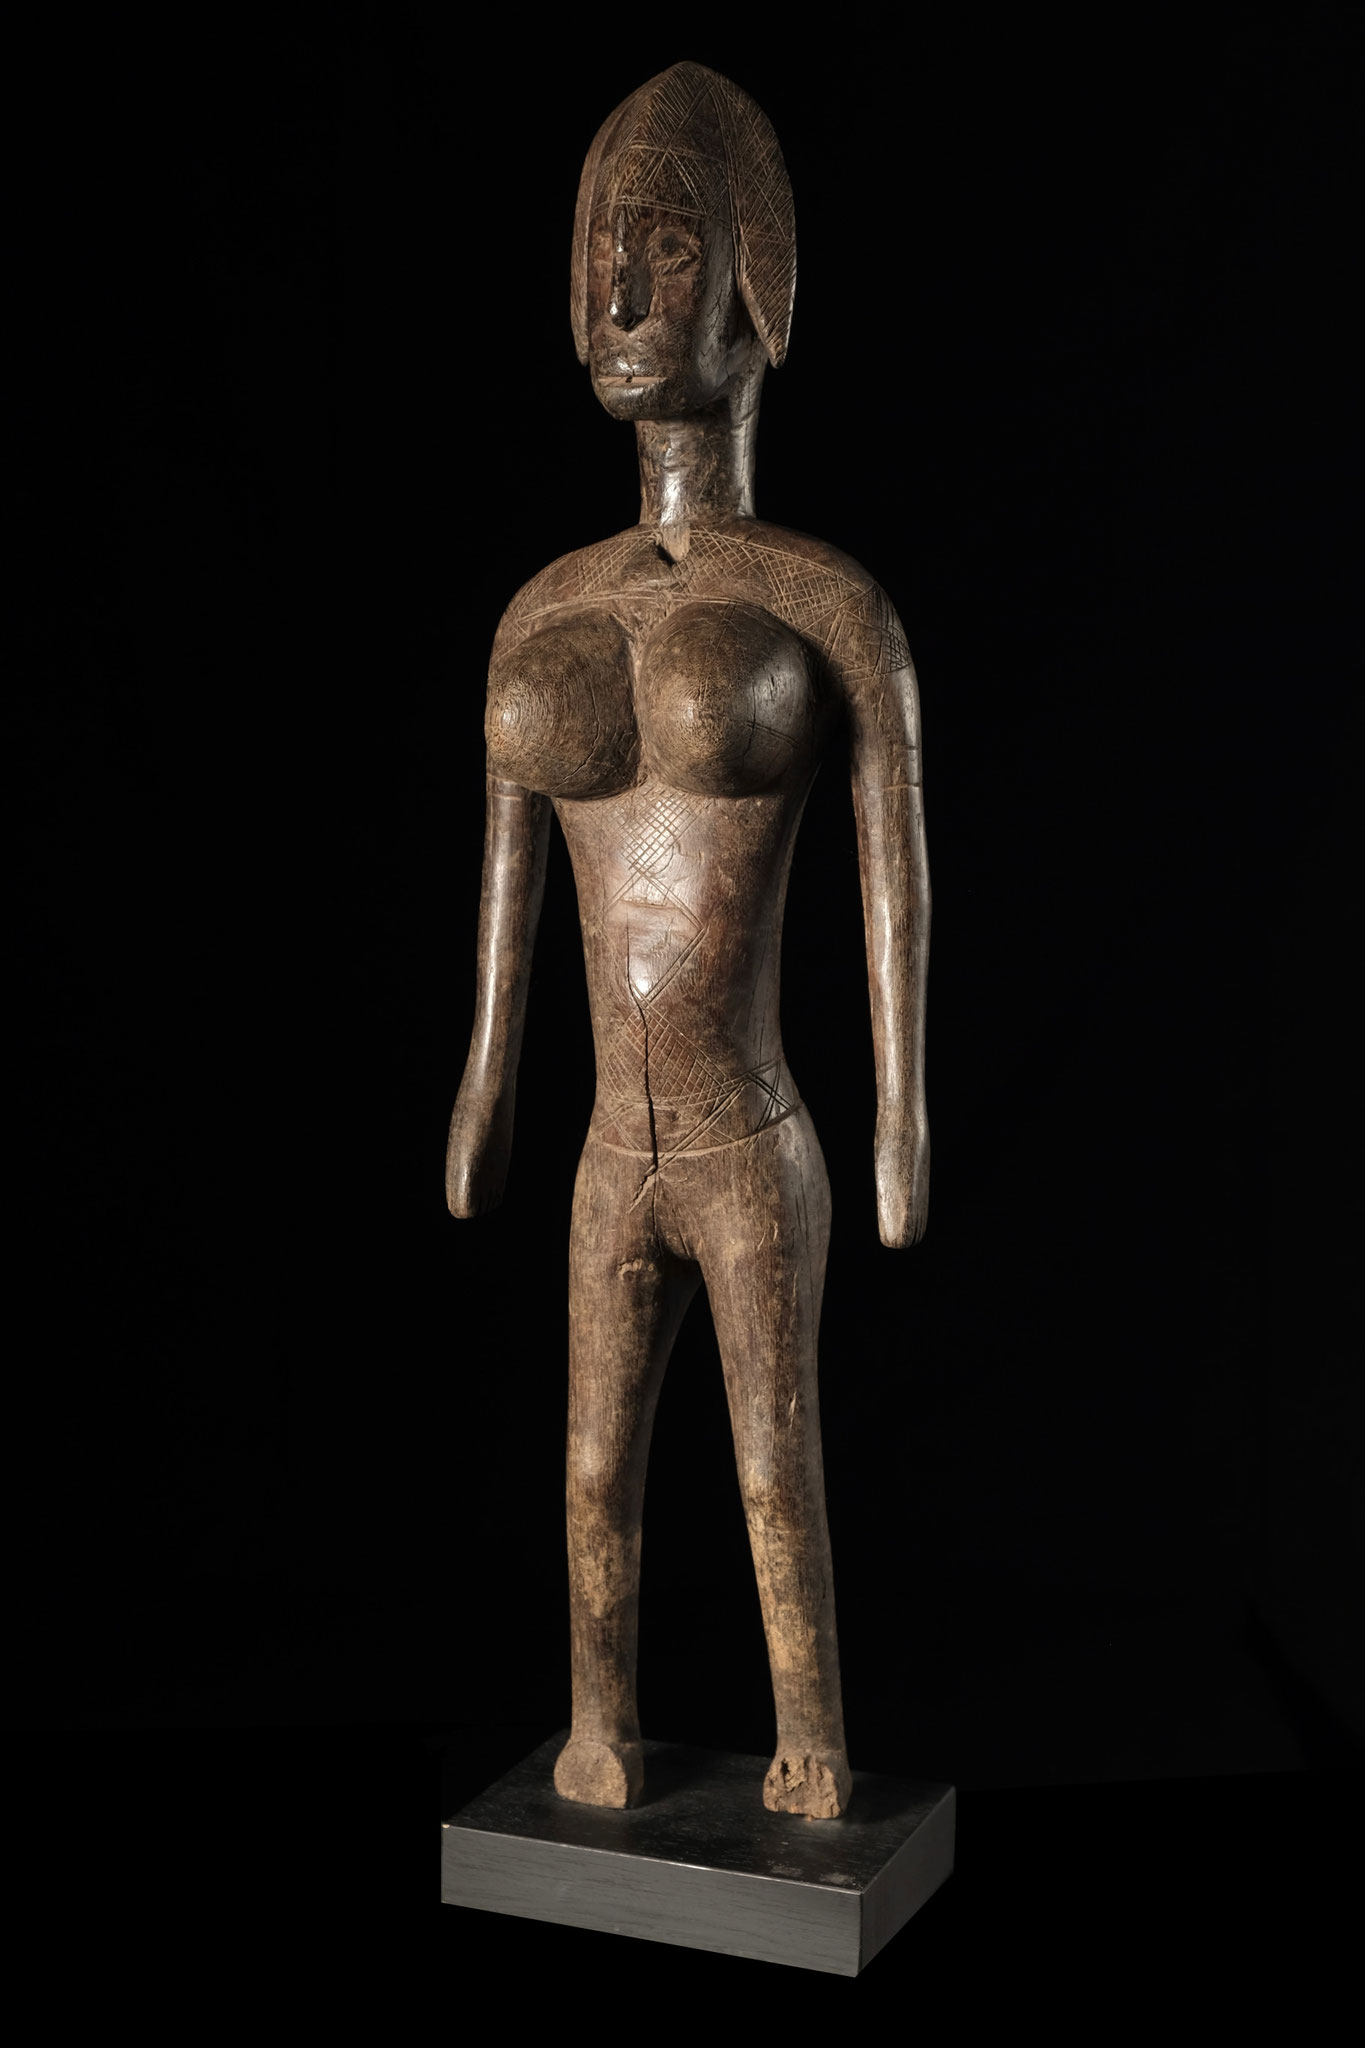 Bambara Figure with fine scarification and shiny patina.